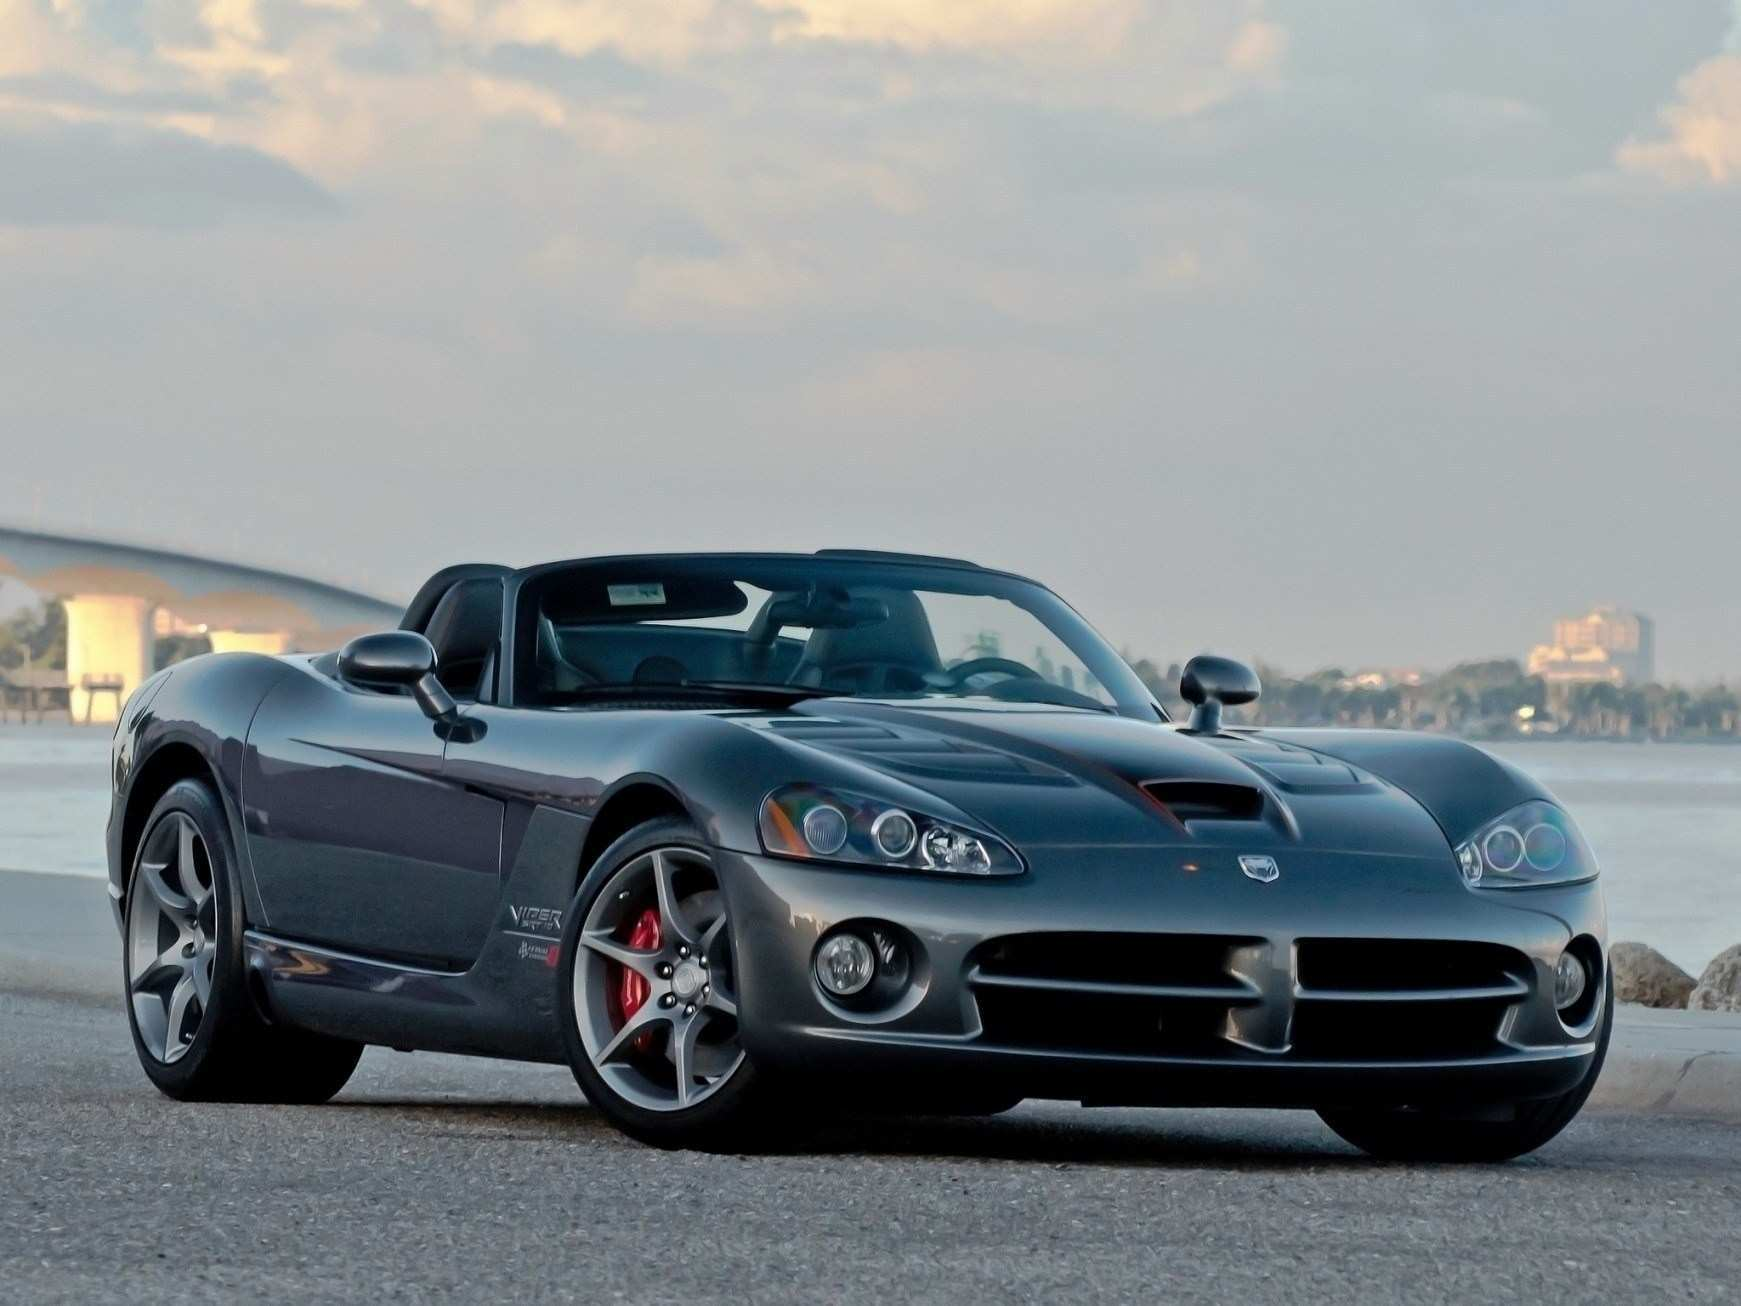 73 Great Dodge Viper Concept 2020 Research New with Dodge Viper Concept 2020